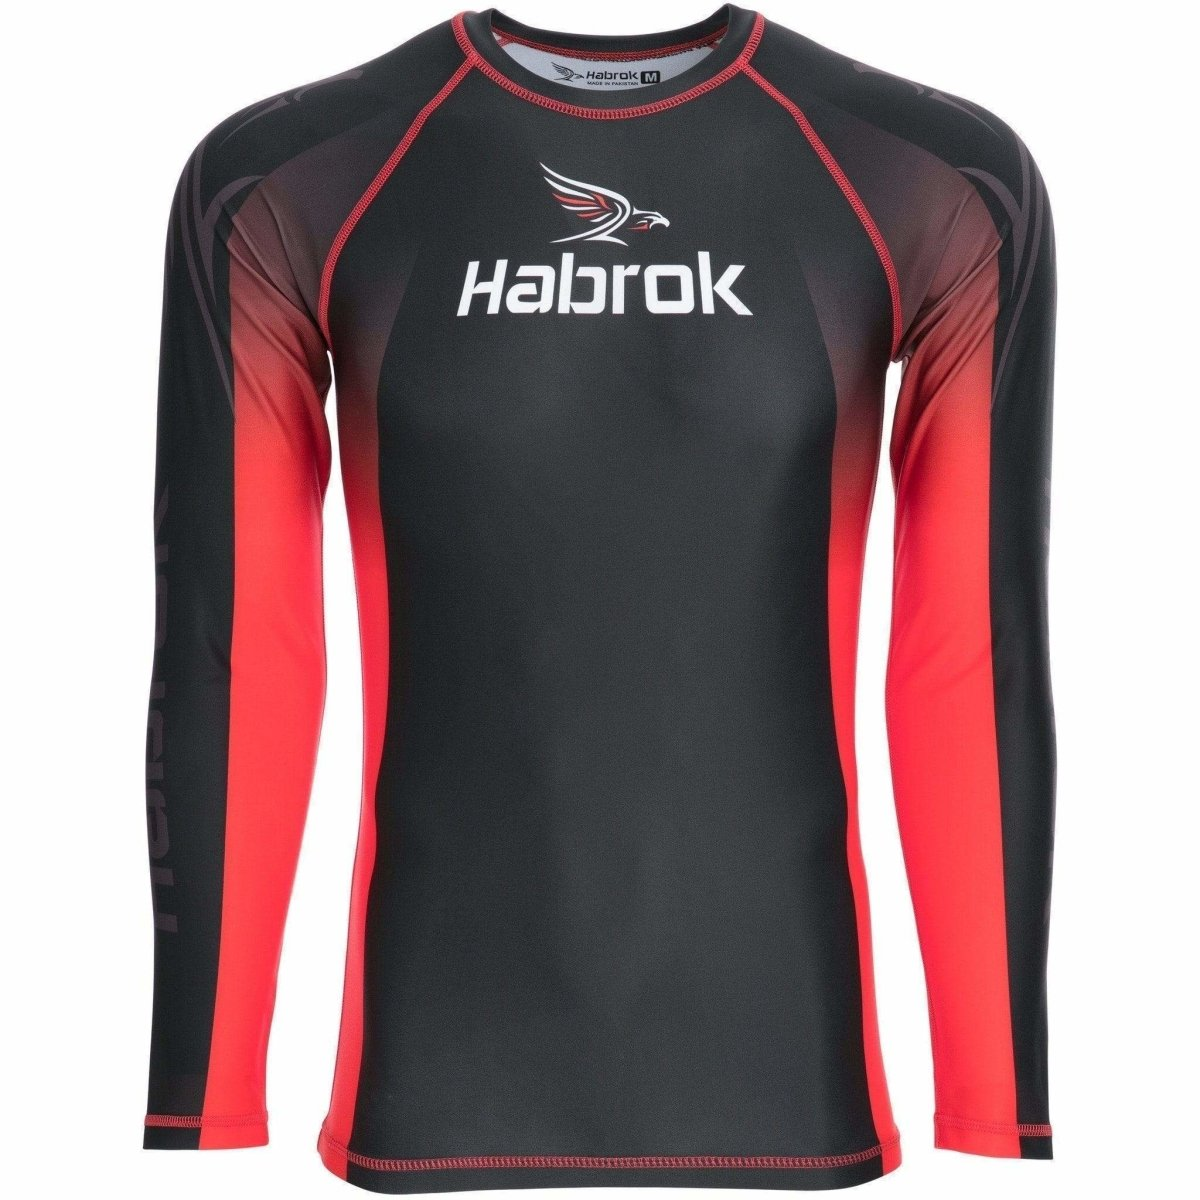 Habrok Rash Guard S / BLACK Elite Rash Guard  | Men Elite Rash Guard | Athletes | Habrok